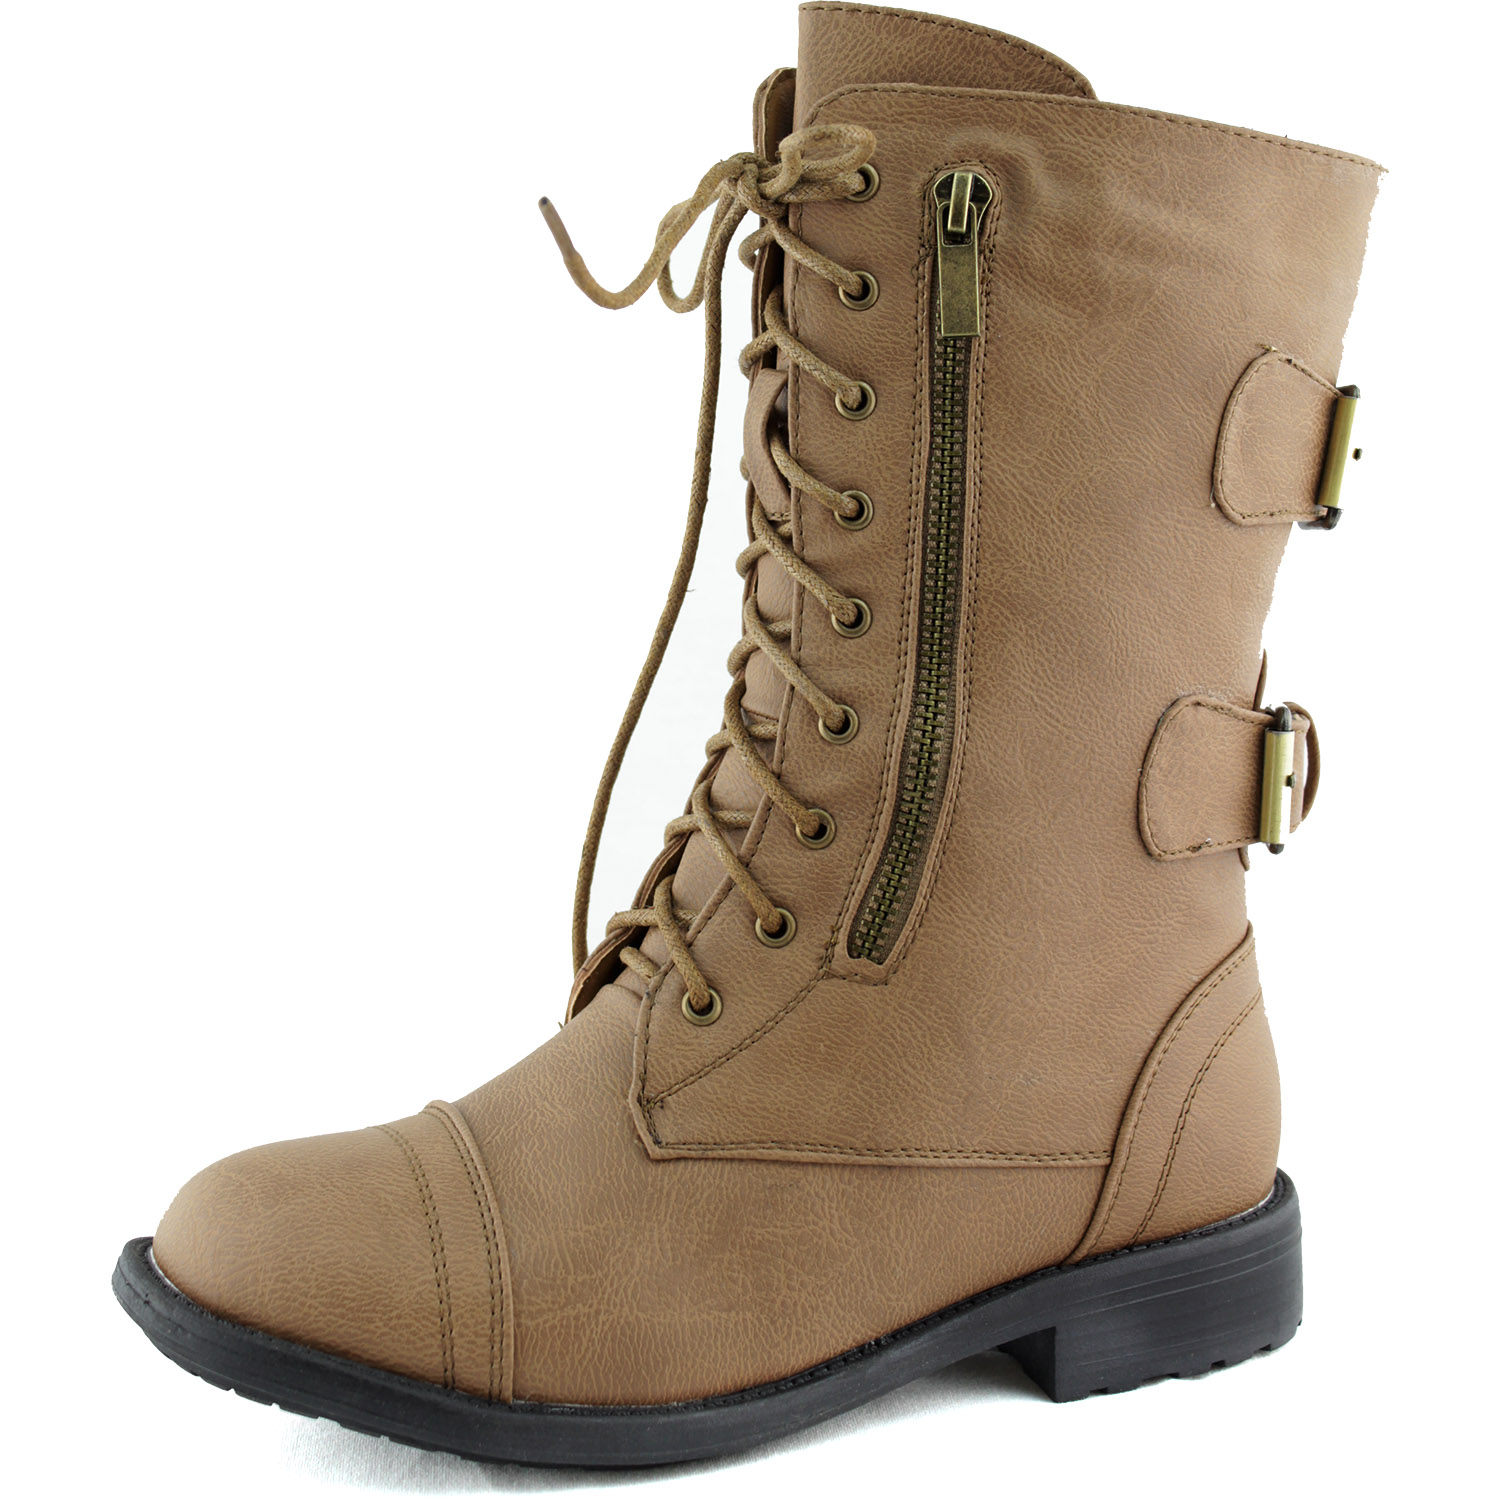 Top Moda Women's Military Up Buckle Combat Boots Mid Knee High Color at Sears.com